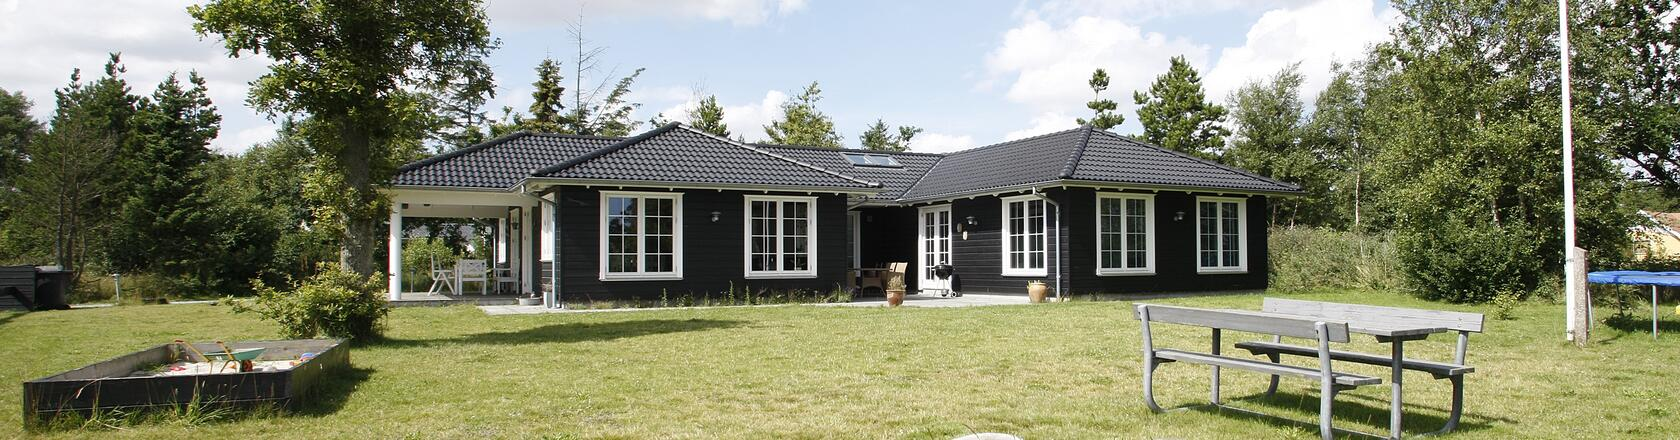 Lyngså in Denmark — Rent a holiday home with DanCenter